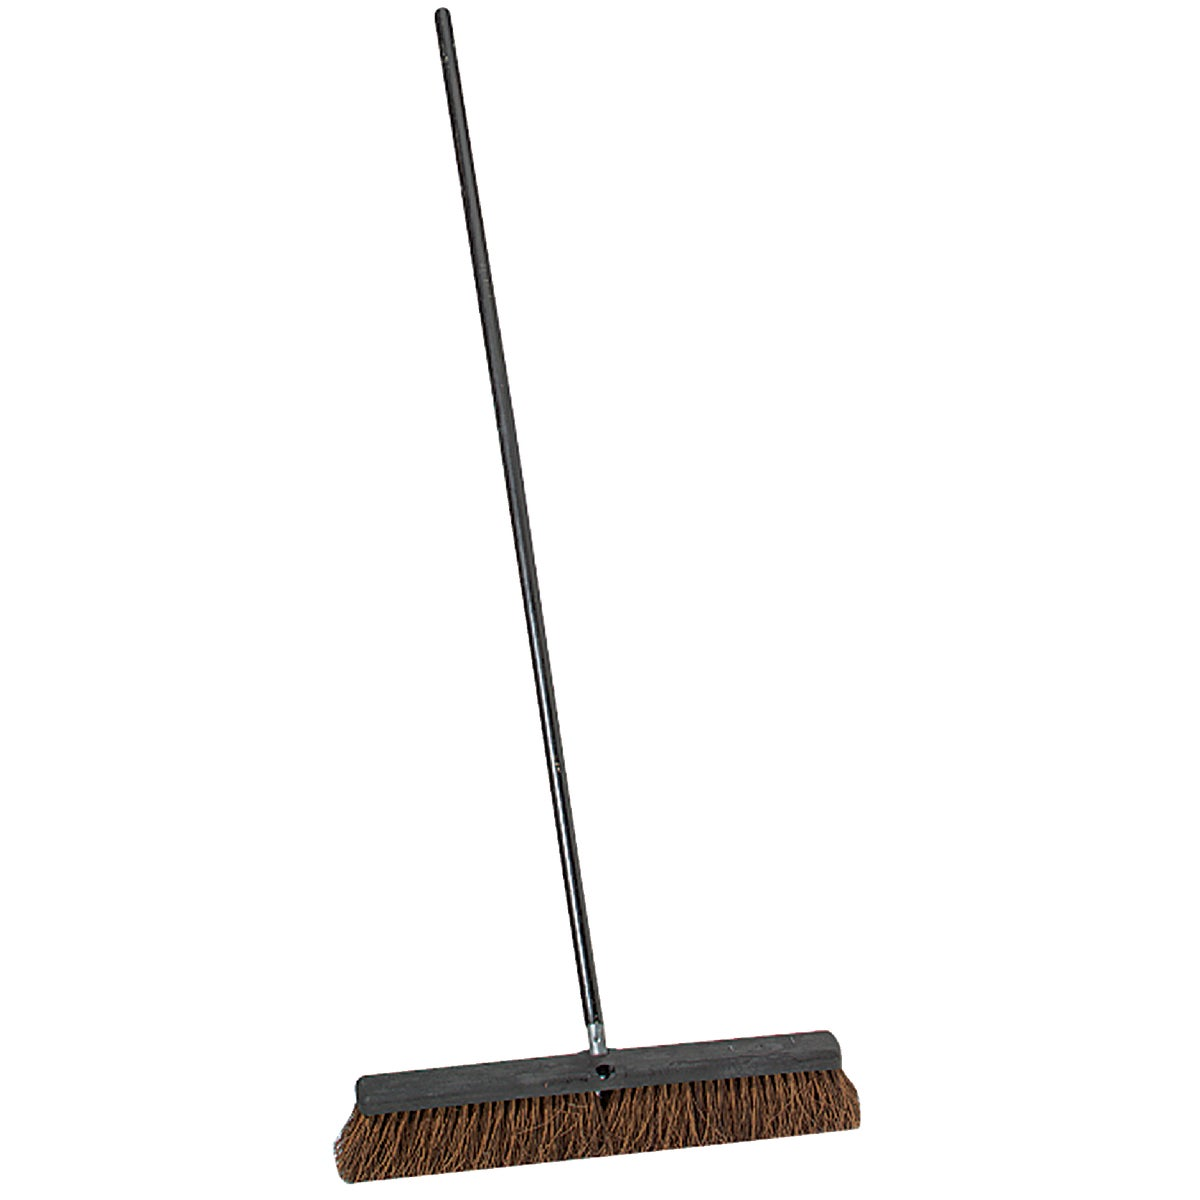 "24"" PALMYRA PUSH BROOM - DIB89211 by D Q B Ind"